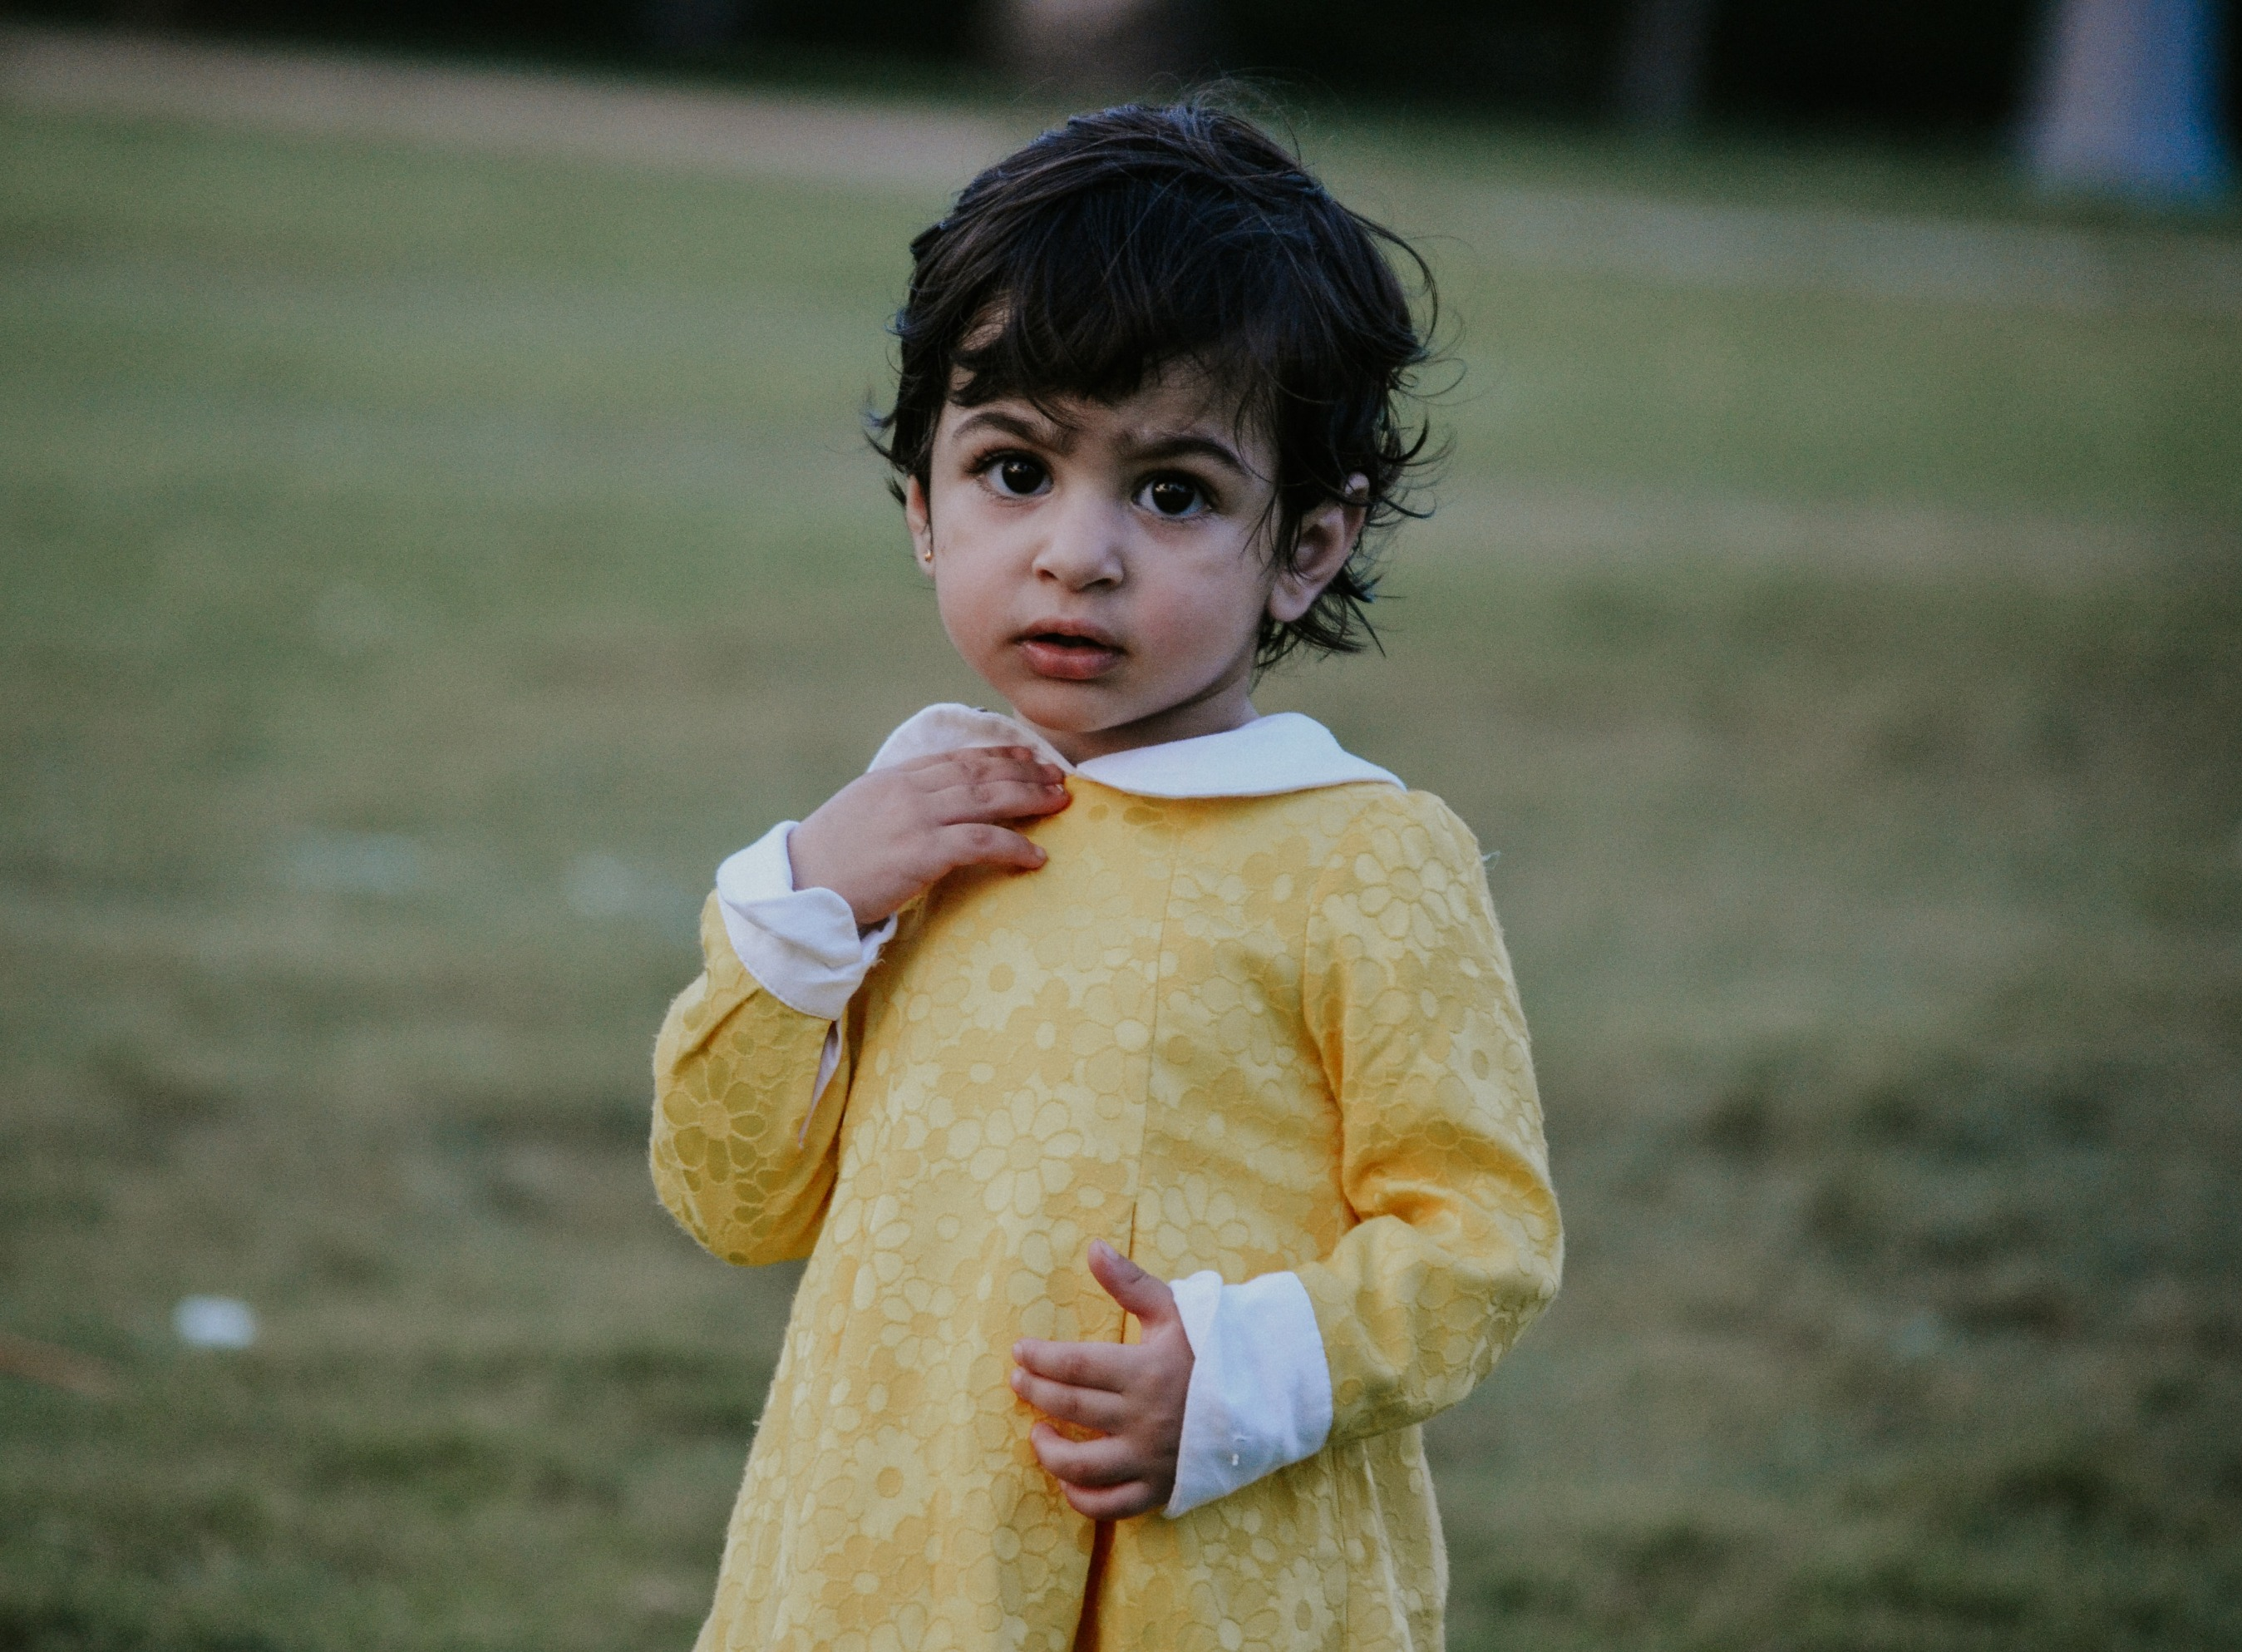 Child in yellow dress